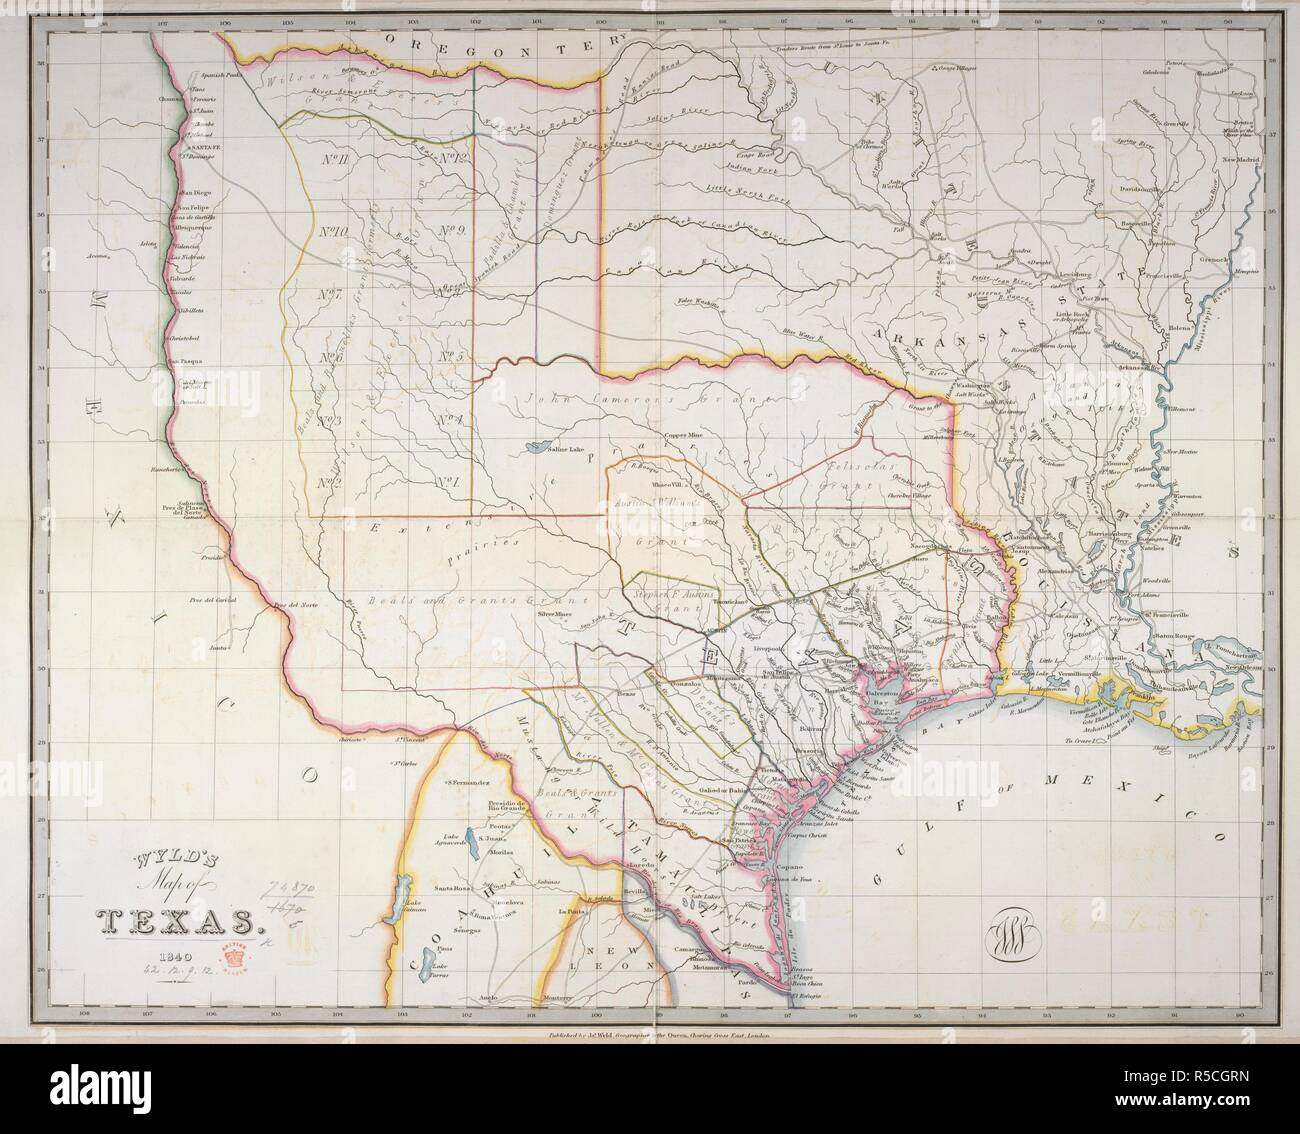 Map Of Texas 1840.Texas Wyld S Map Of Texas London 1840 Source Maps 74870 5